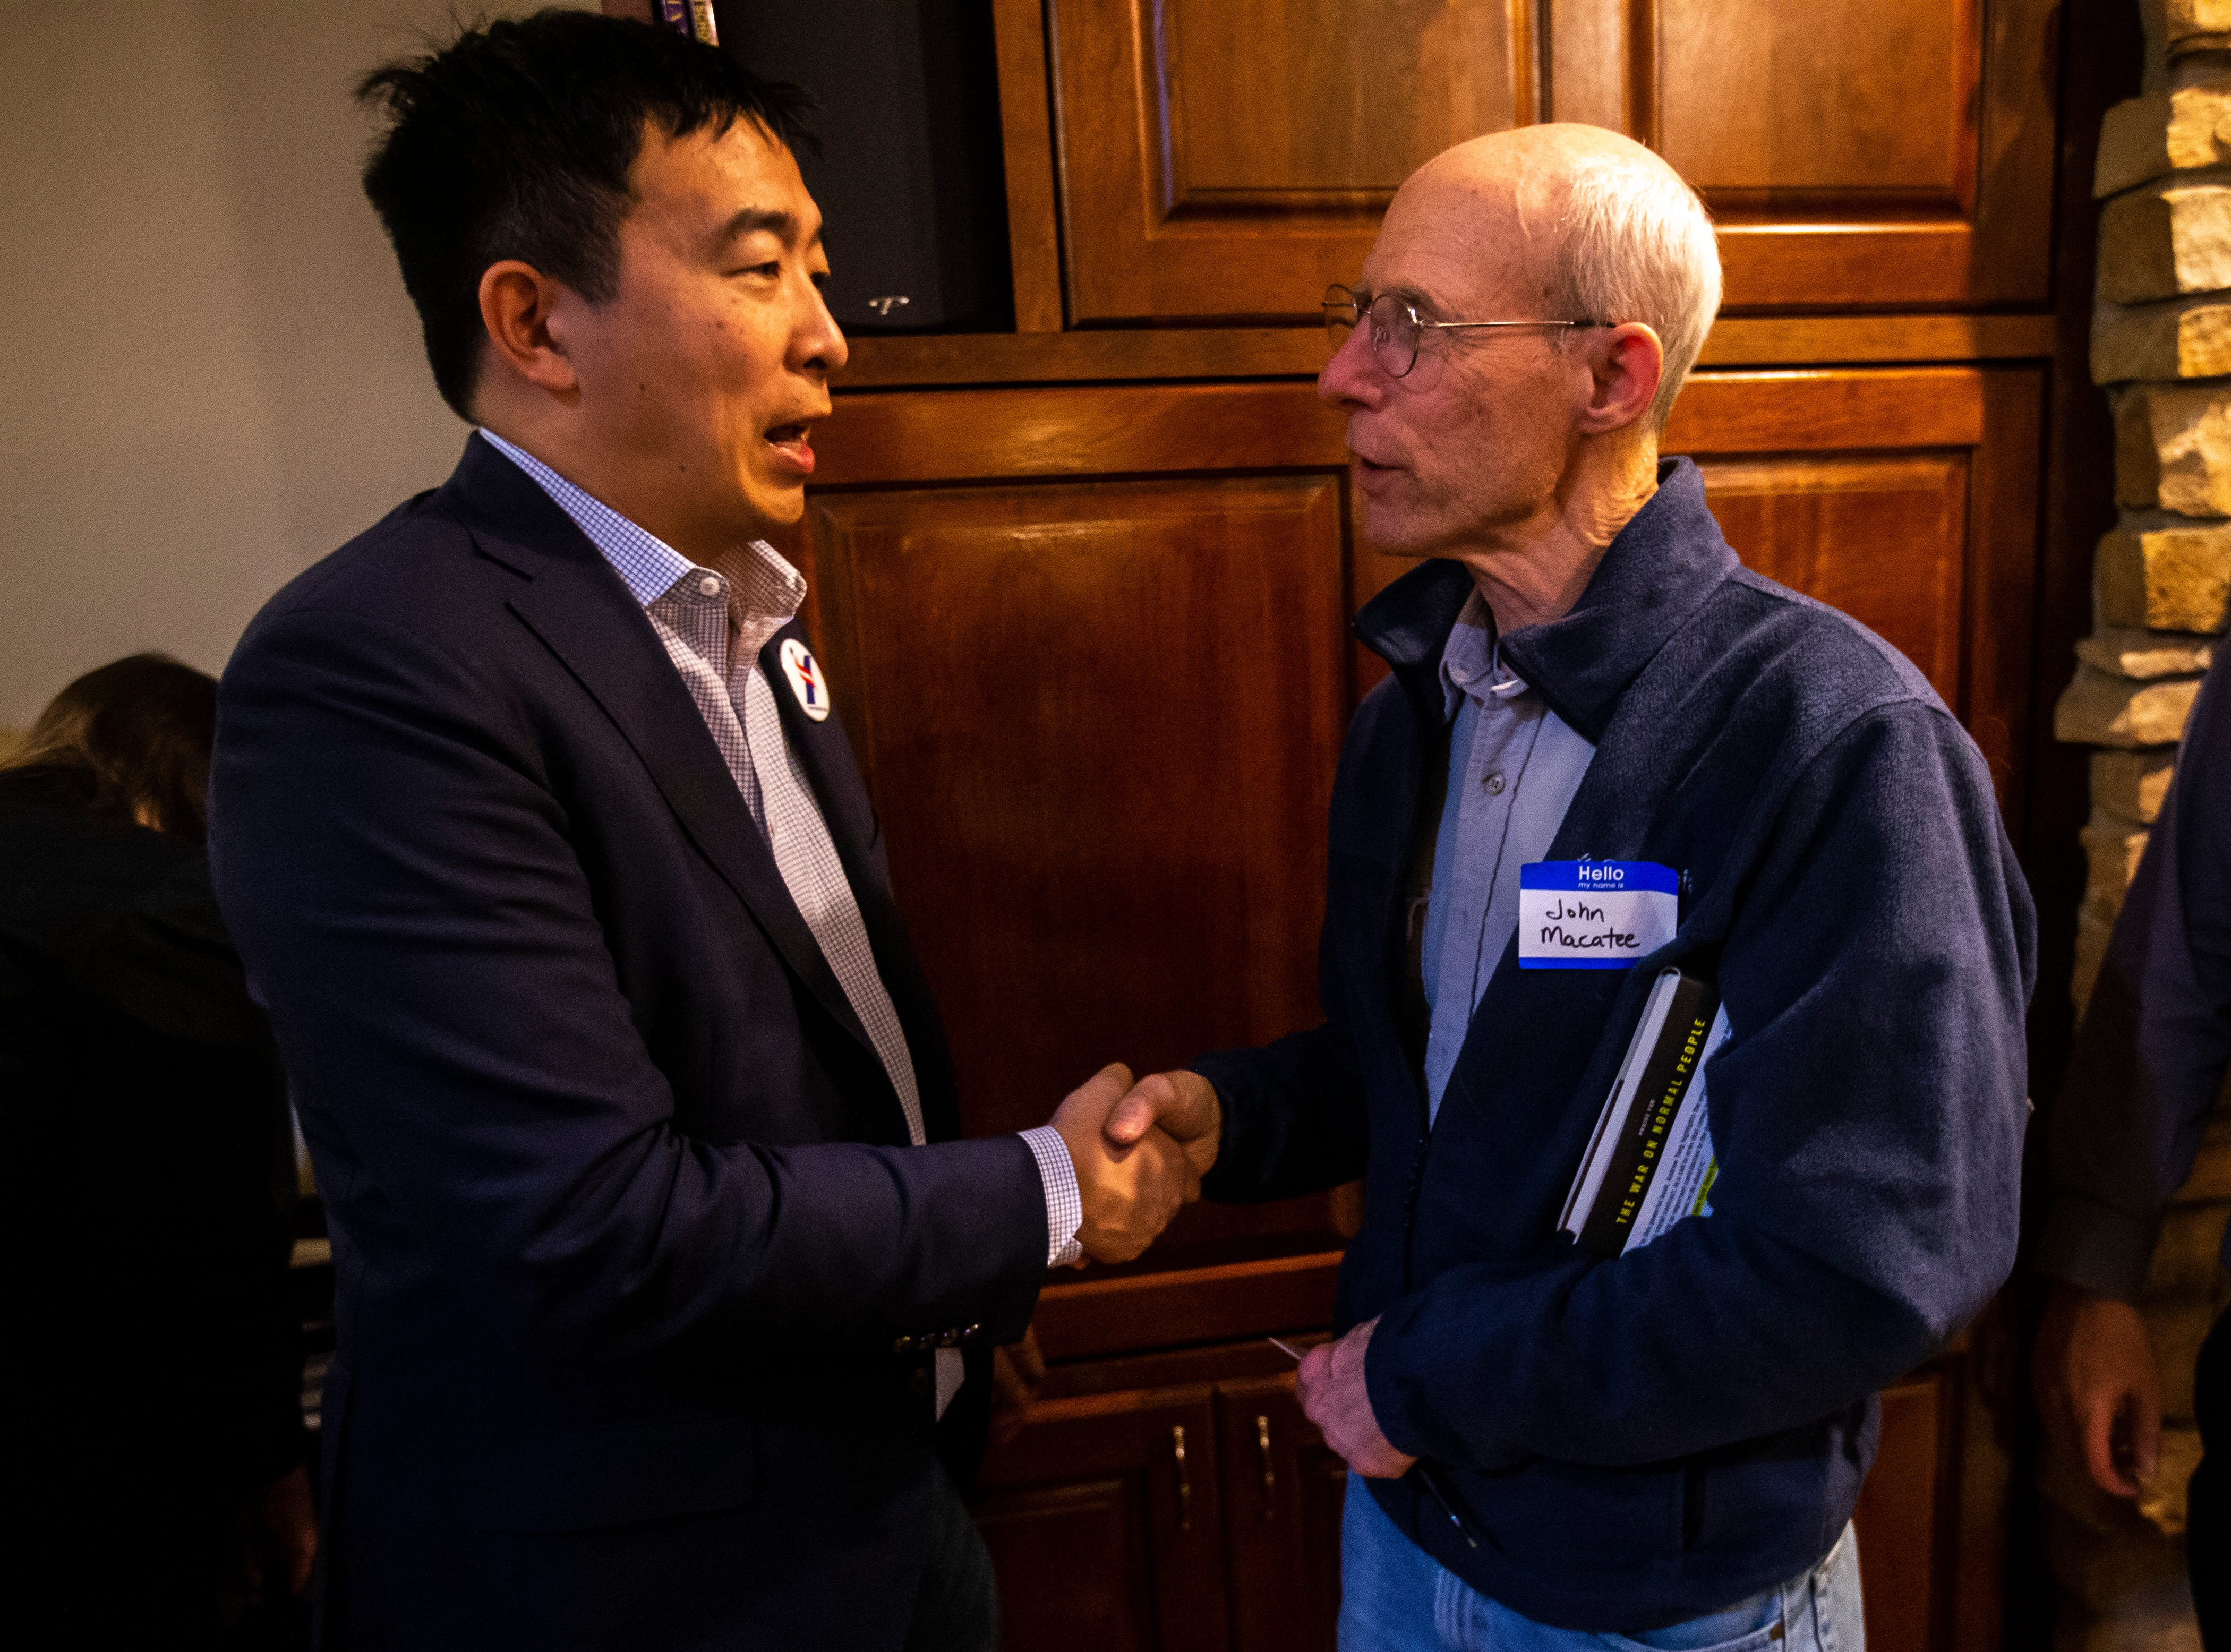 """Andrew Yang, a 2020 Democratic presidential candidate, shakes hands with John Macatee, of Iowa City, at the """"Potluck Insurgency,"""" a dinner party organized by local activists, on Sunday, March 10, 2019, at a home in Iowa City, Iowa."""